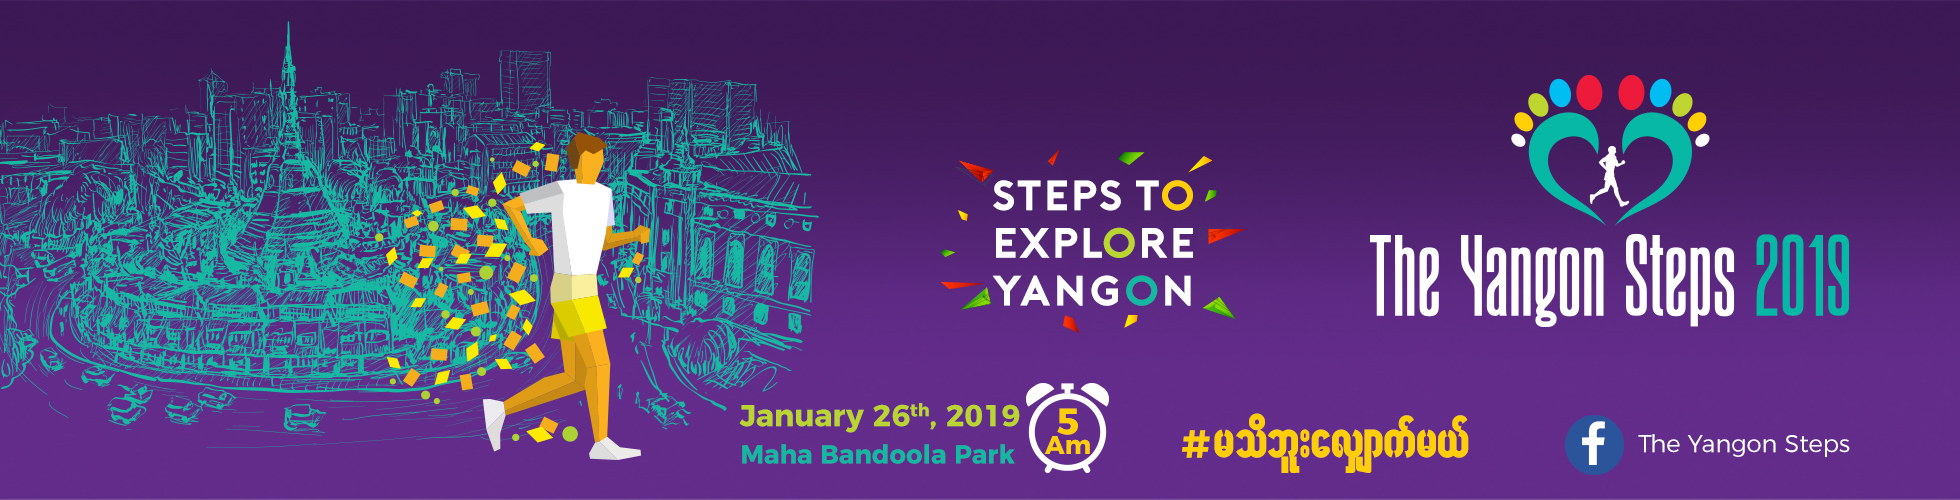 The Yangon Steps 2019 Banner Image